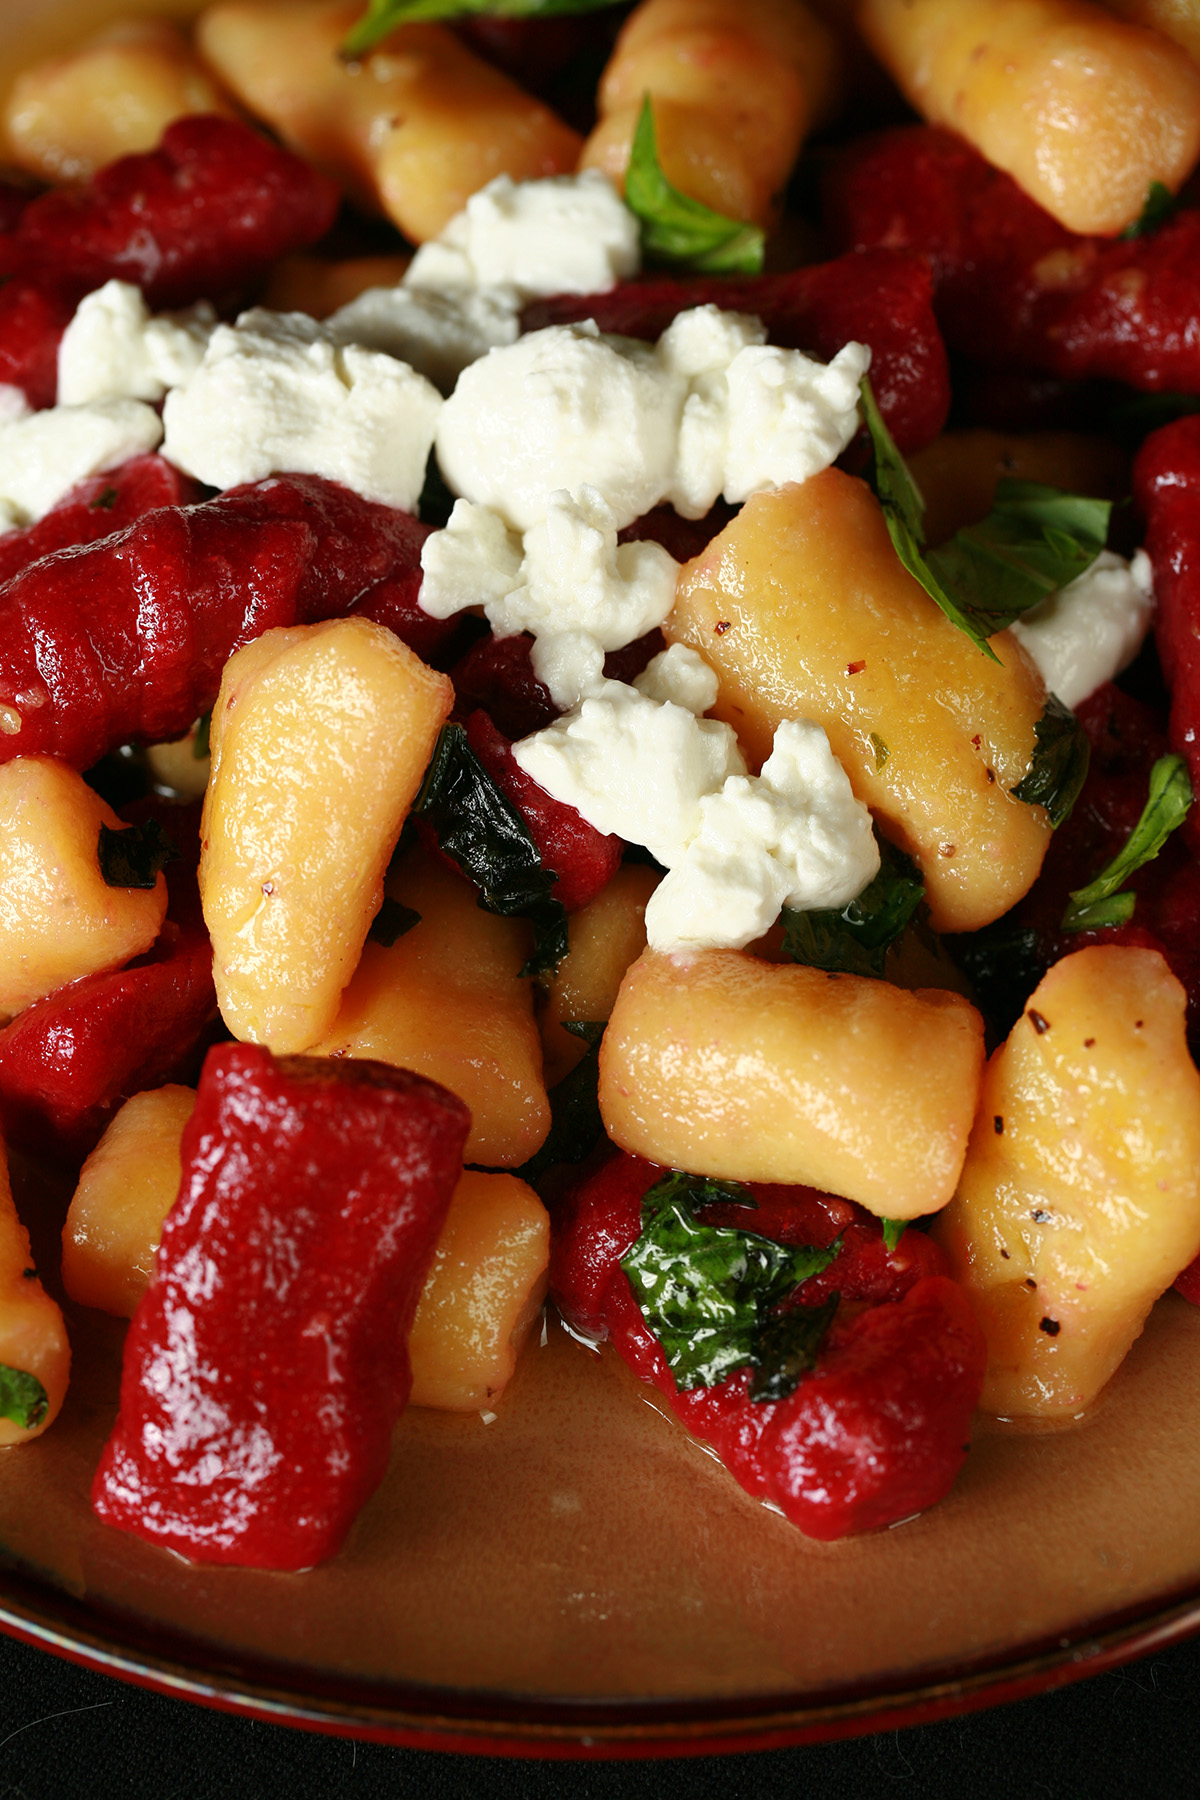 A plate of red and yellow roasted beet gnocchi. It's topped with crumbled goat cheese and fresh basil.